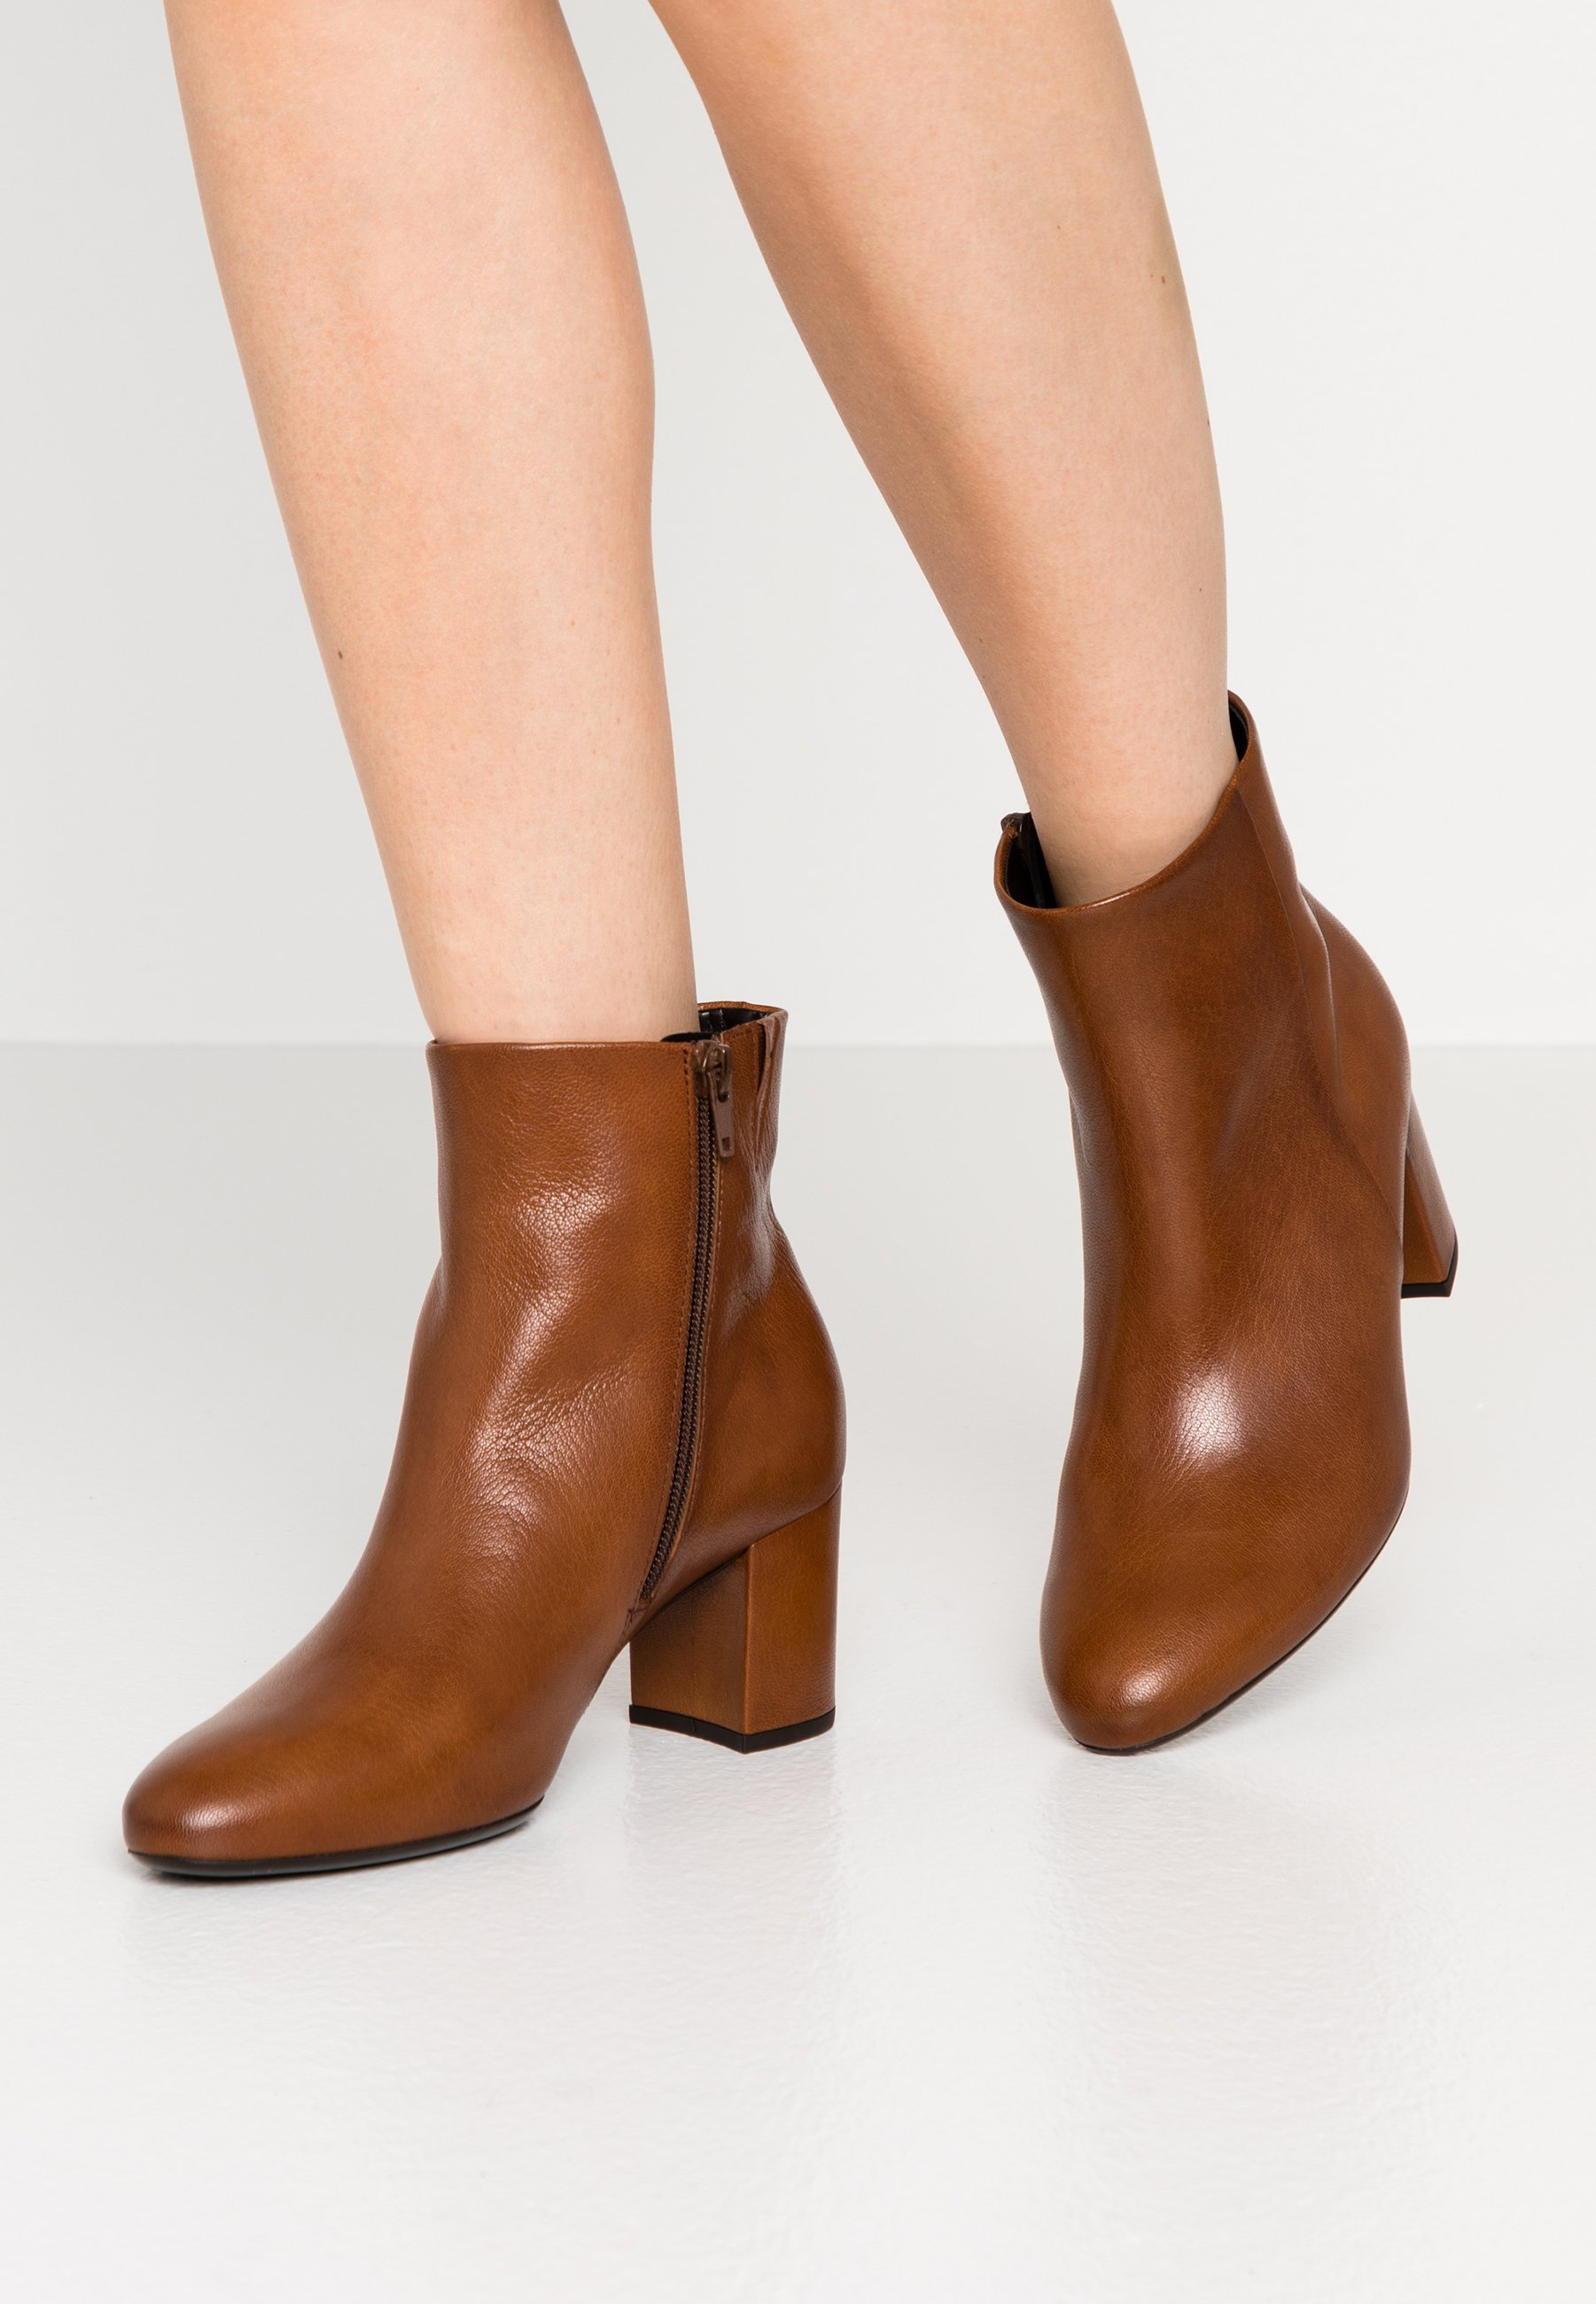 Hyper Online Cheapest Women's Shoes Gabor Classic ankle boots new whsiky X3Pg5sGoR hiVCT24dL